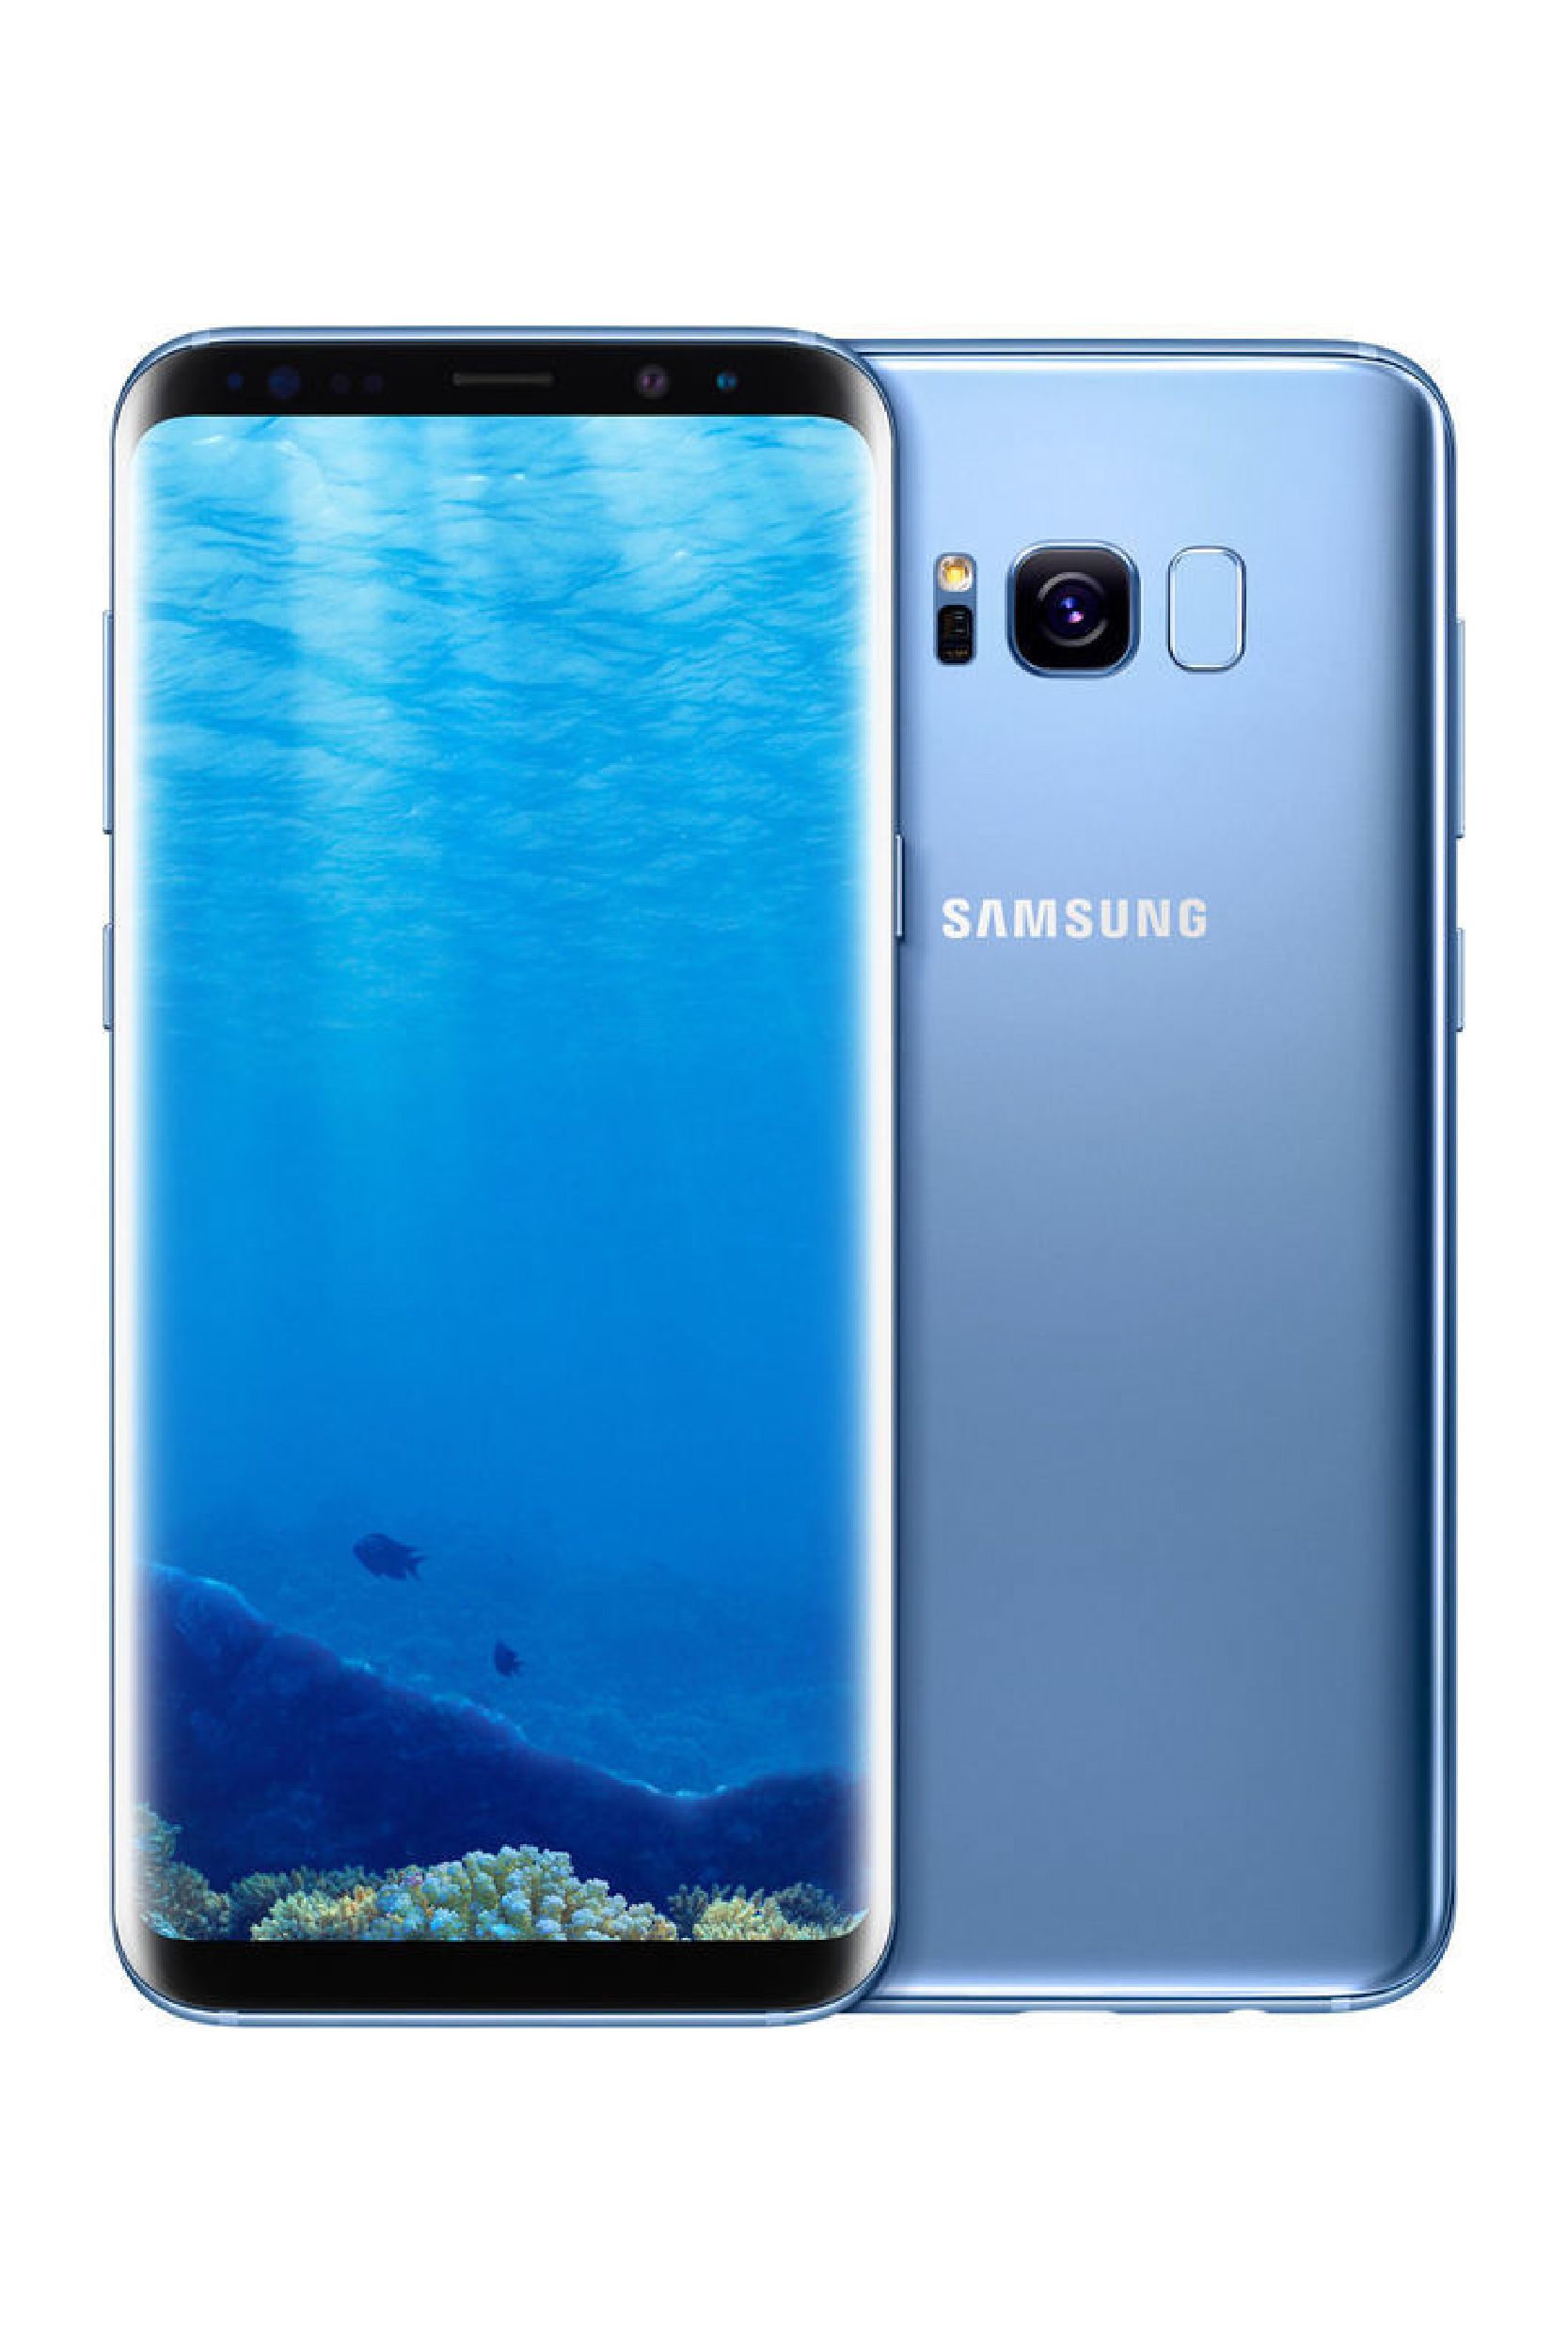 Samsung Galaxy S8 Plus Price In Pakistan Specs Daily Updated